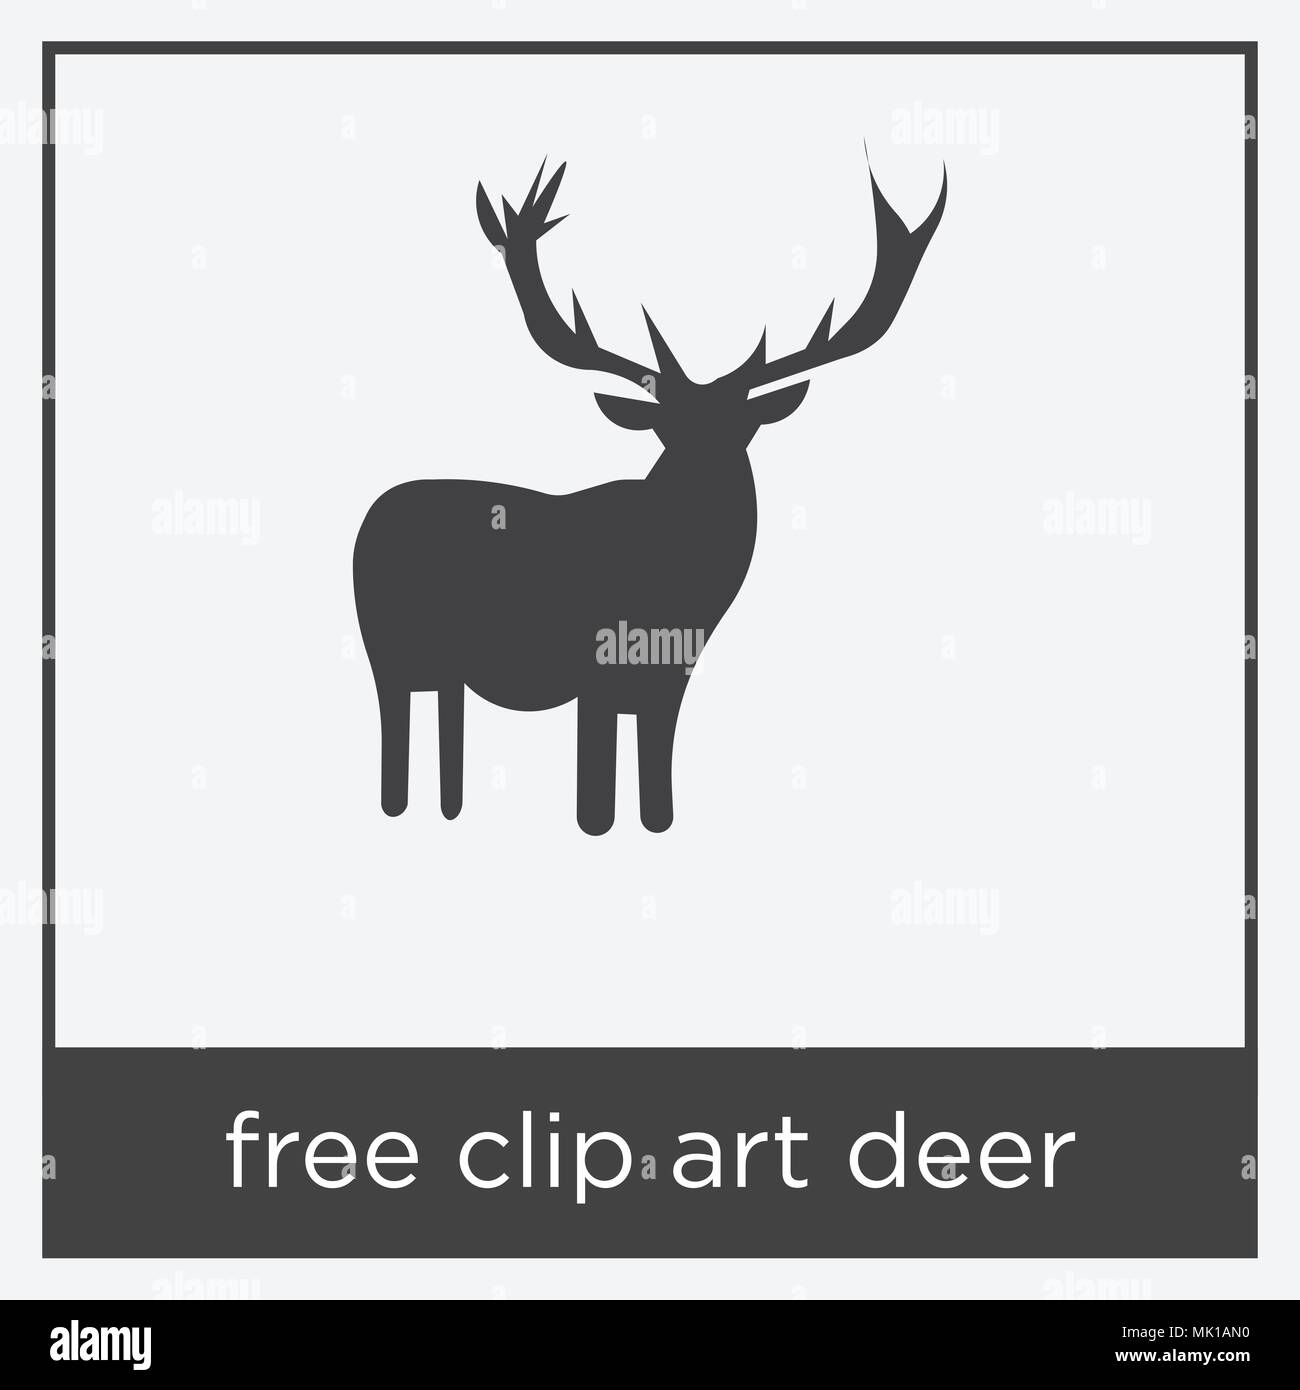 free clip art deer icon isolated on white background with gray frame ...